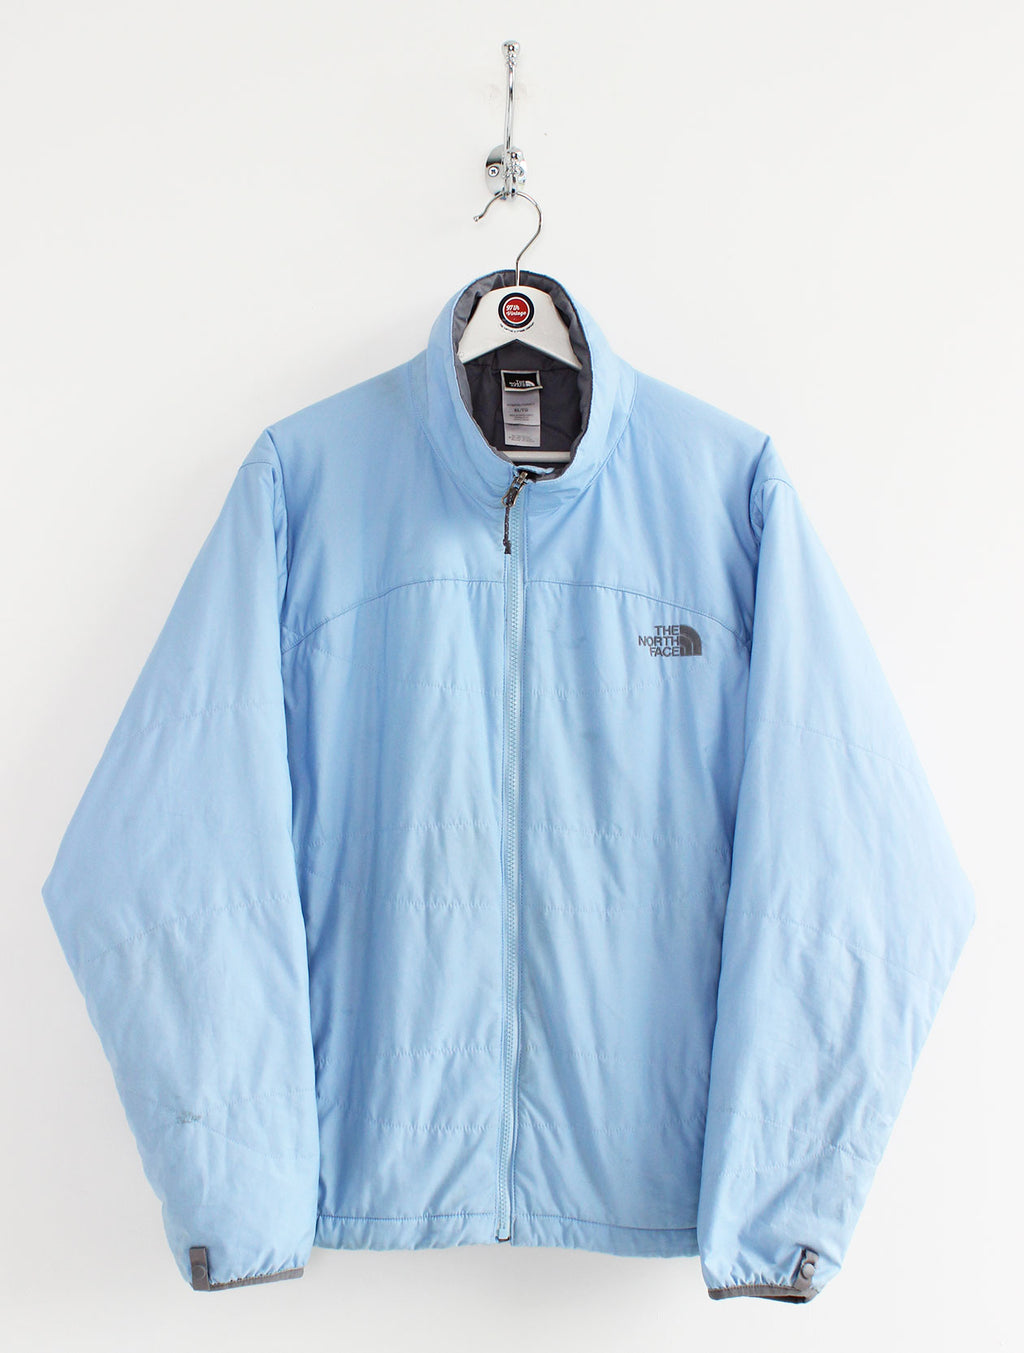 Women's The North Face Puffer Jacket (XL)